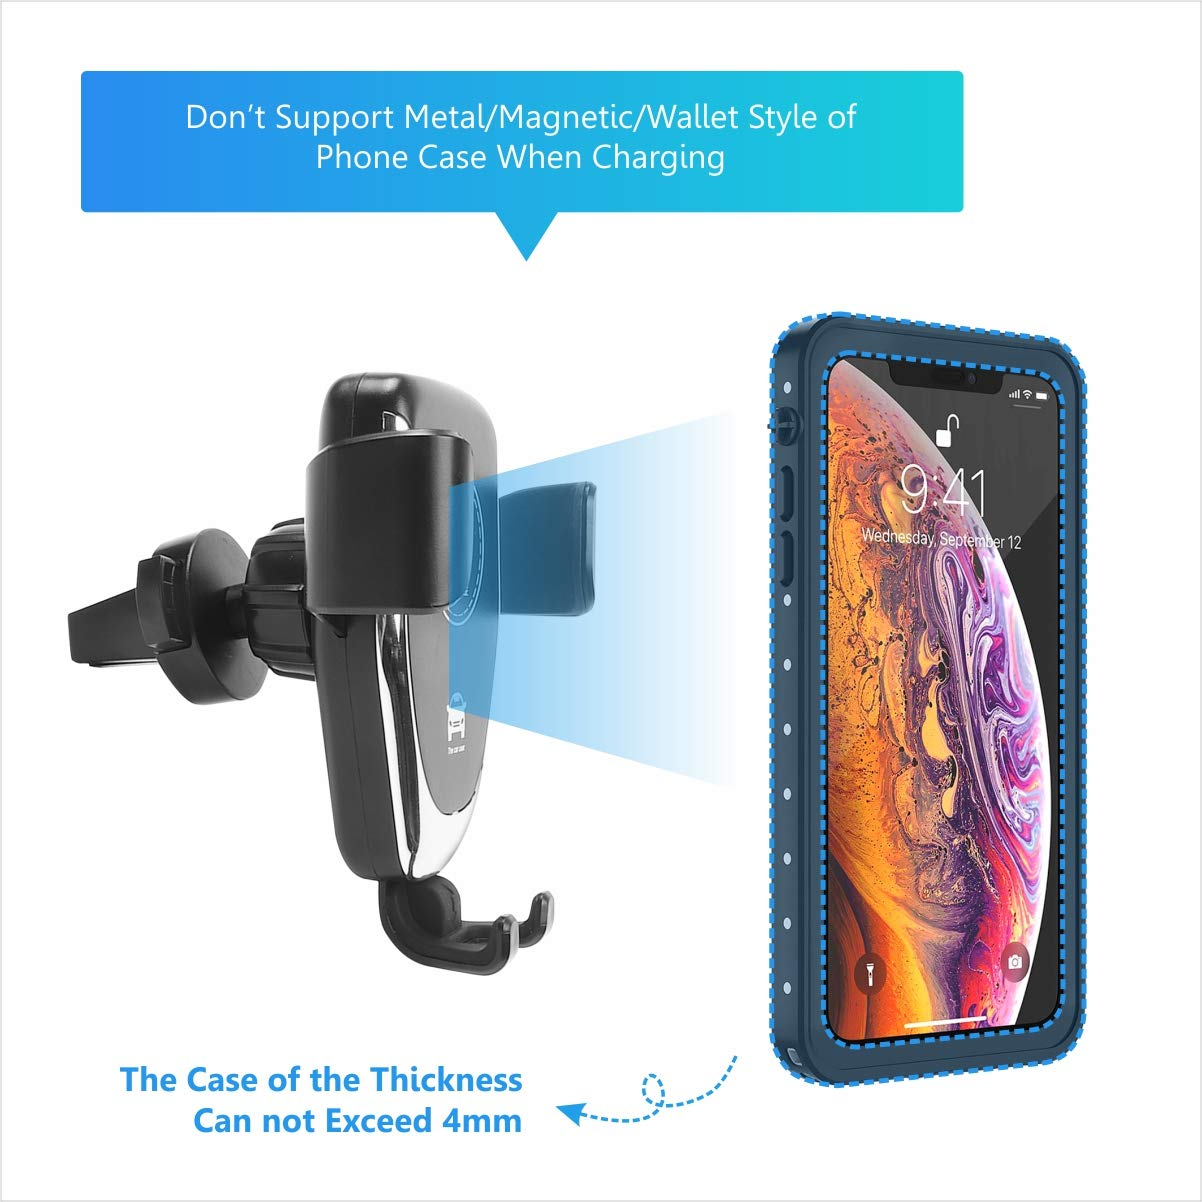 10W Fast Wireless Charger Car Charger Mount Car Air Vent /& Dashboard Universal Phone Holder Clamping/Wireless/Car/Charger Compatible with iPhone 8//8 Plus//X//XS//XR//X Wireless Car Charger